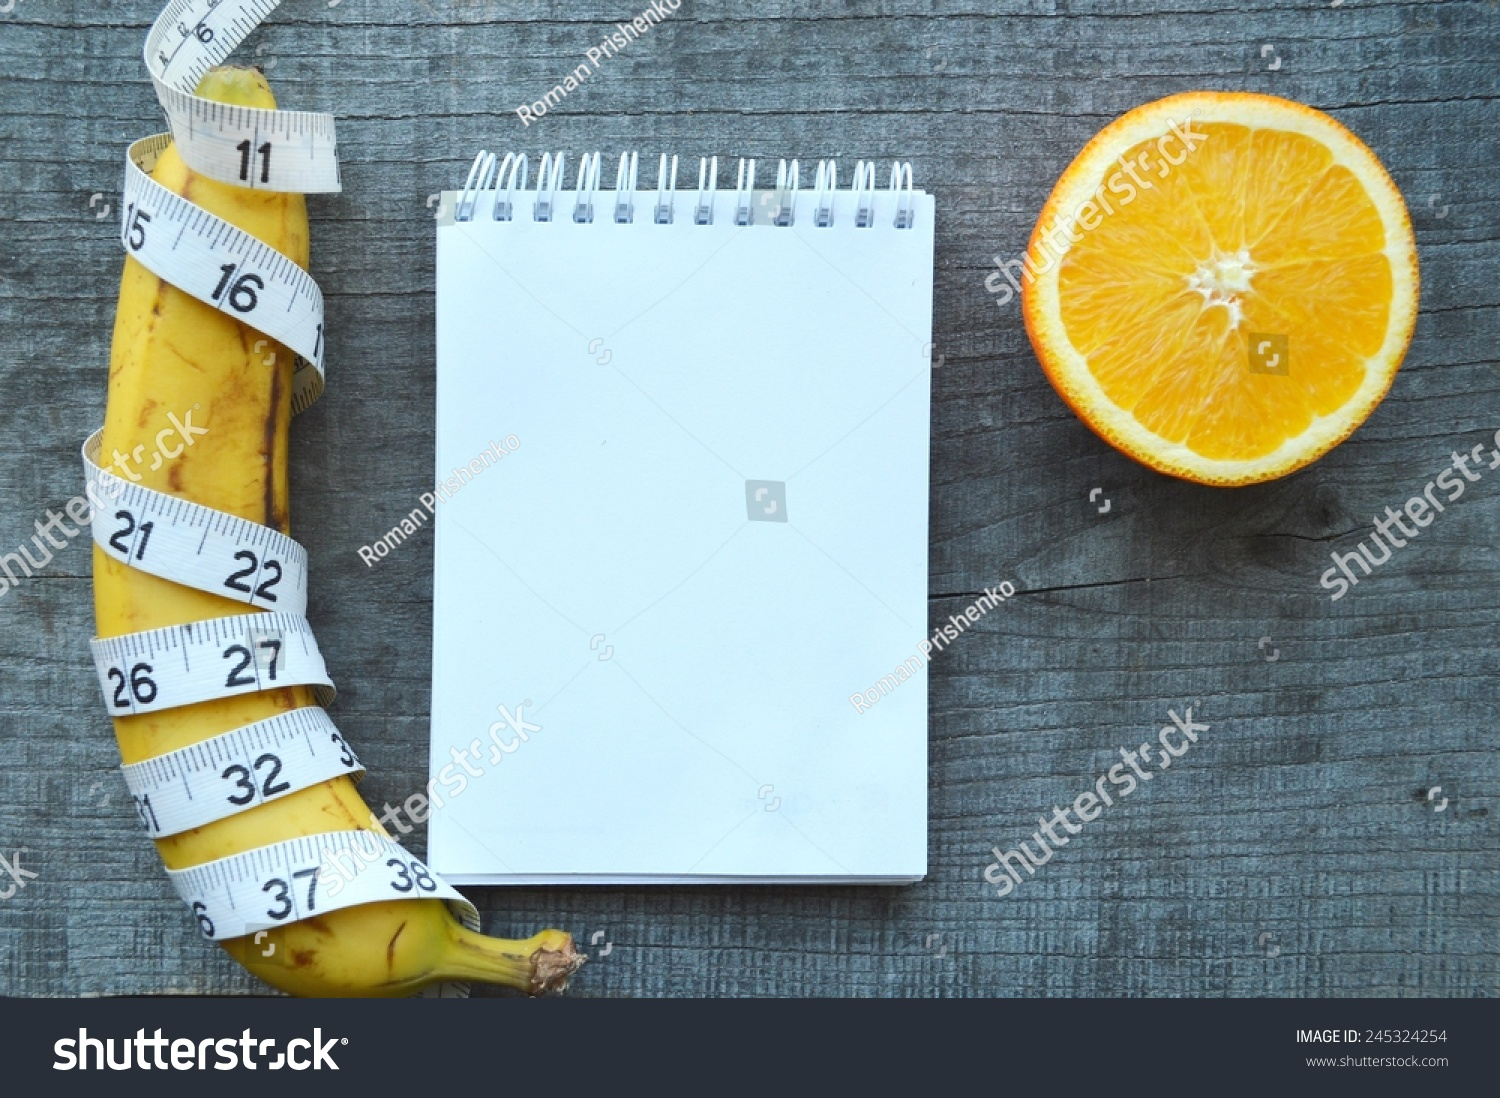 Wondrous Vegetables Fruits Weight Loss Measuring Tape Stock Photo Download Free Architecture Designs Scobabritishbridgeorg